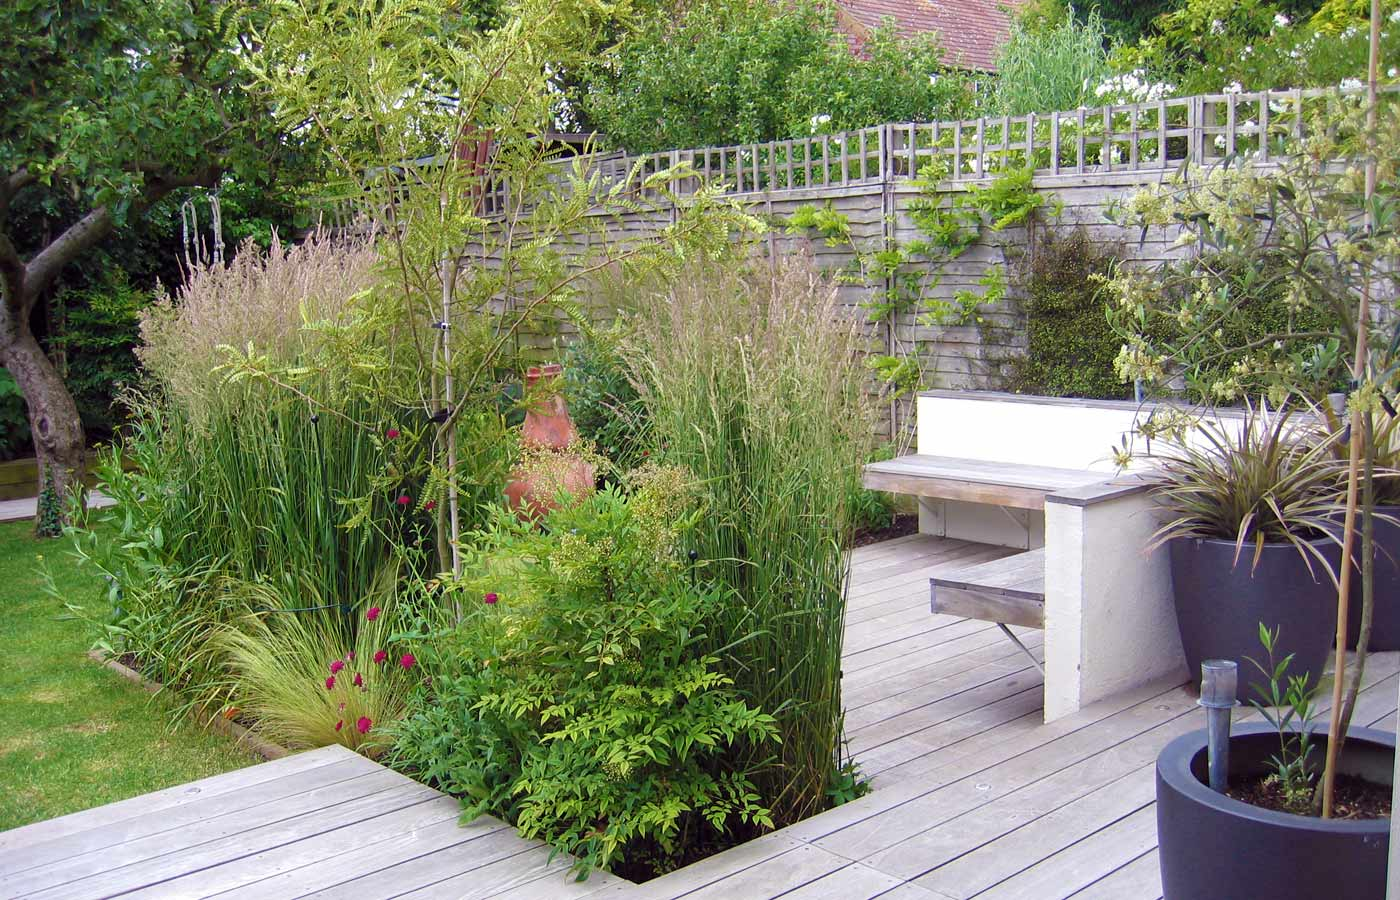 Garden design for small garden with decking for Small garden design ideas decking